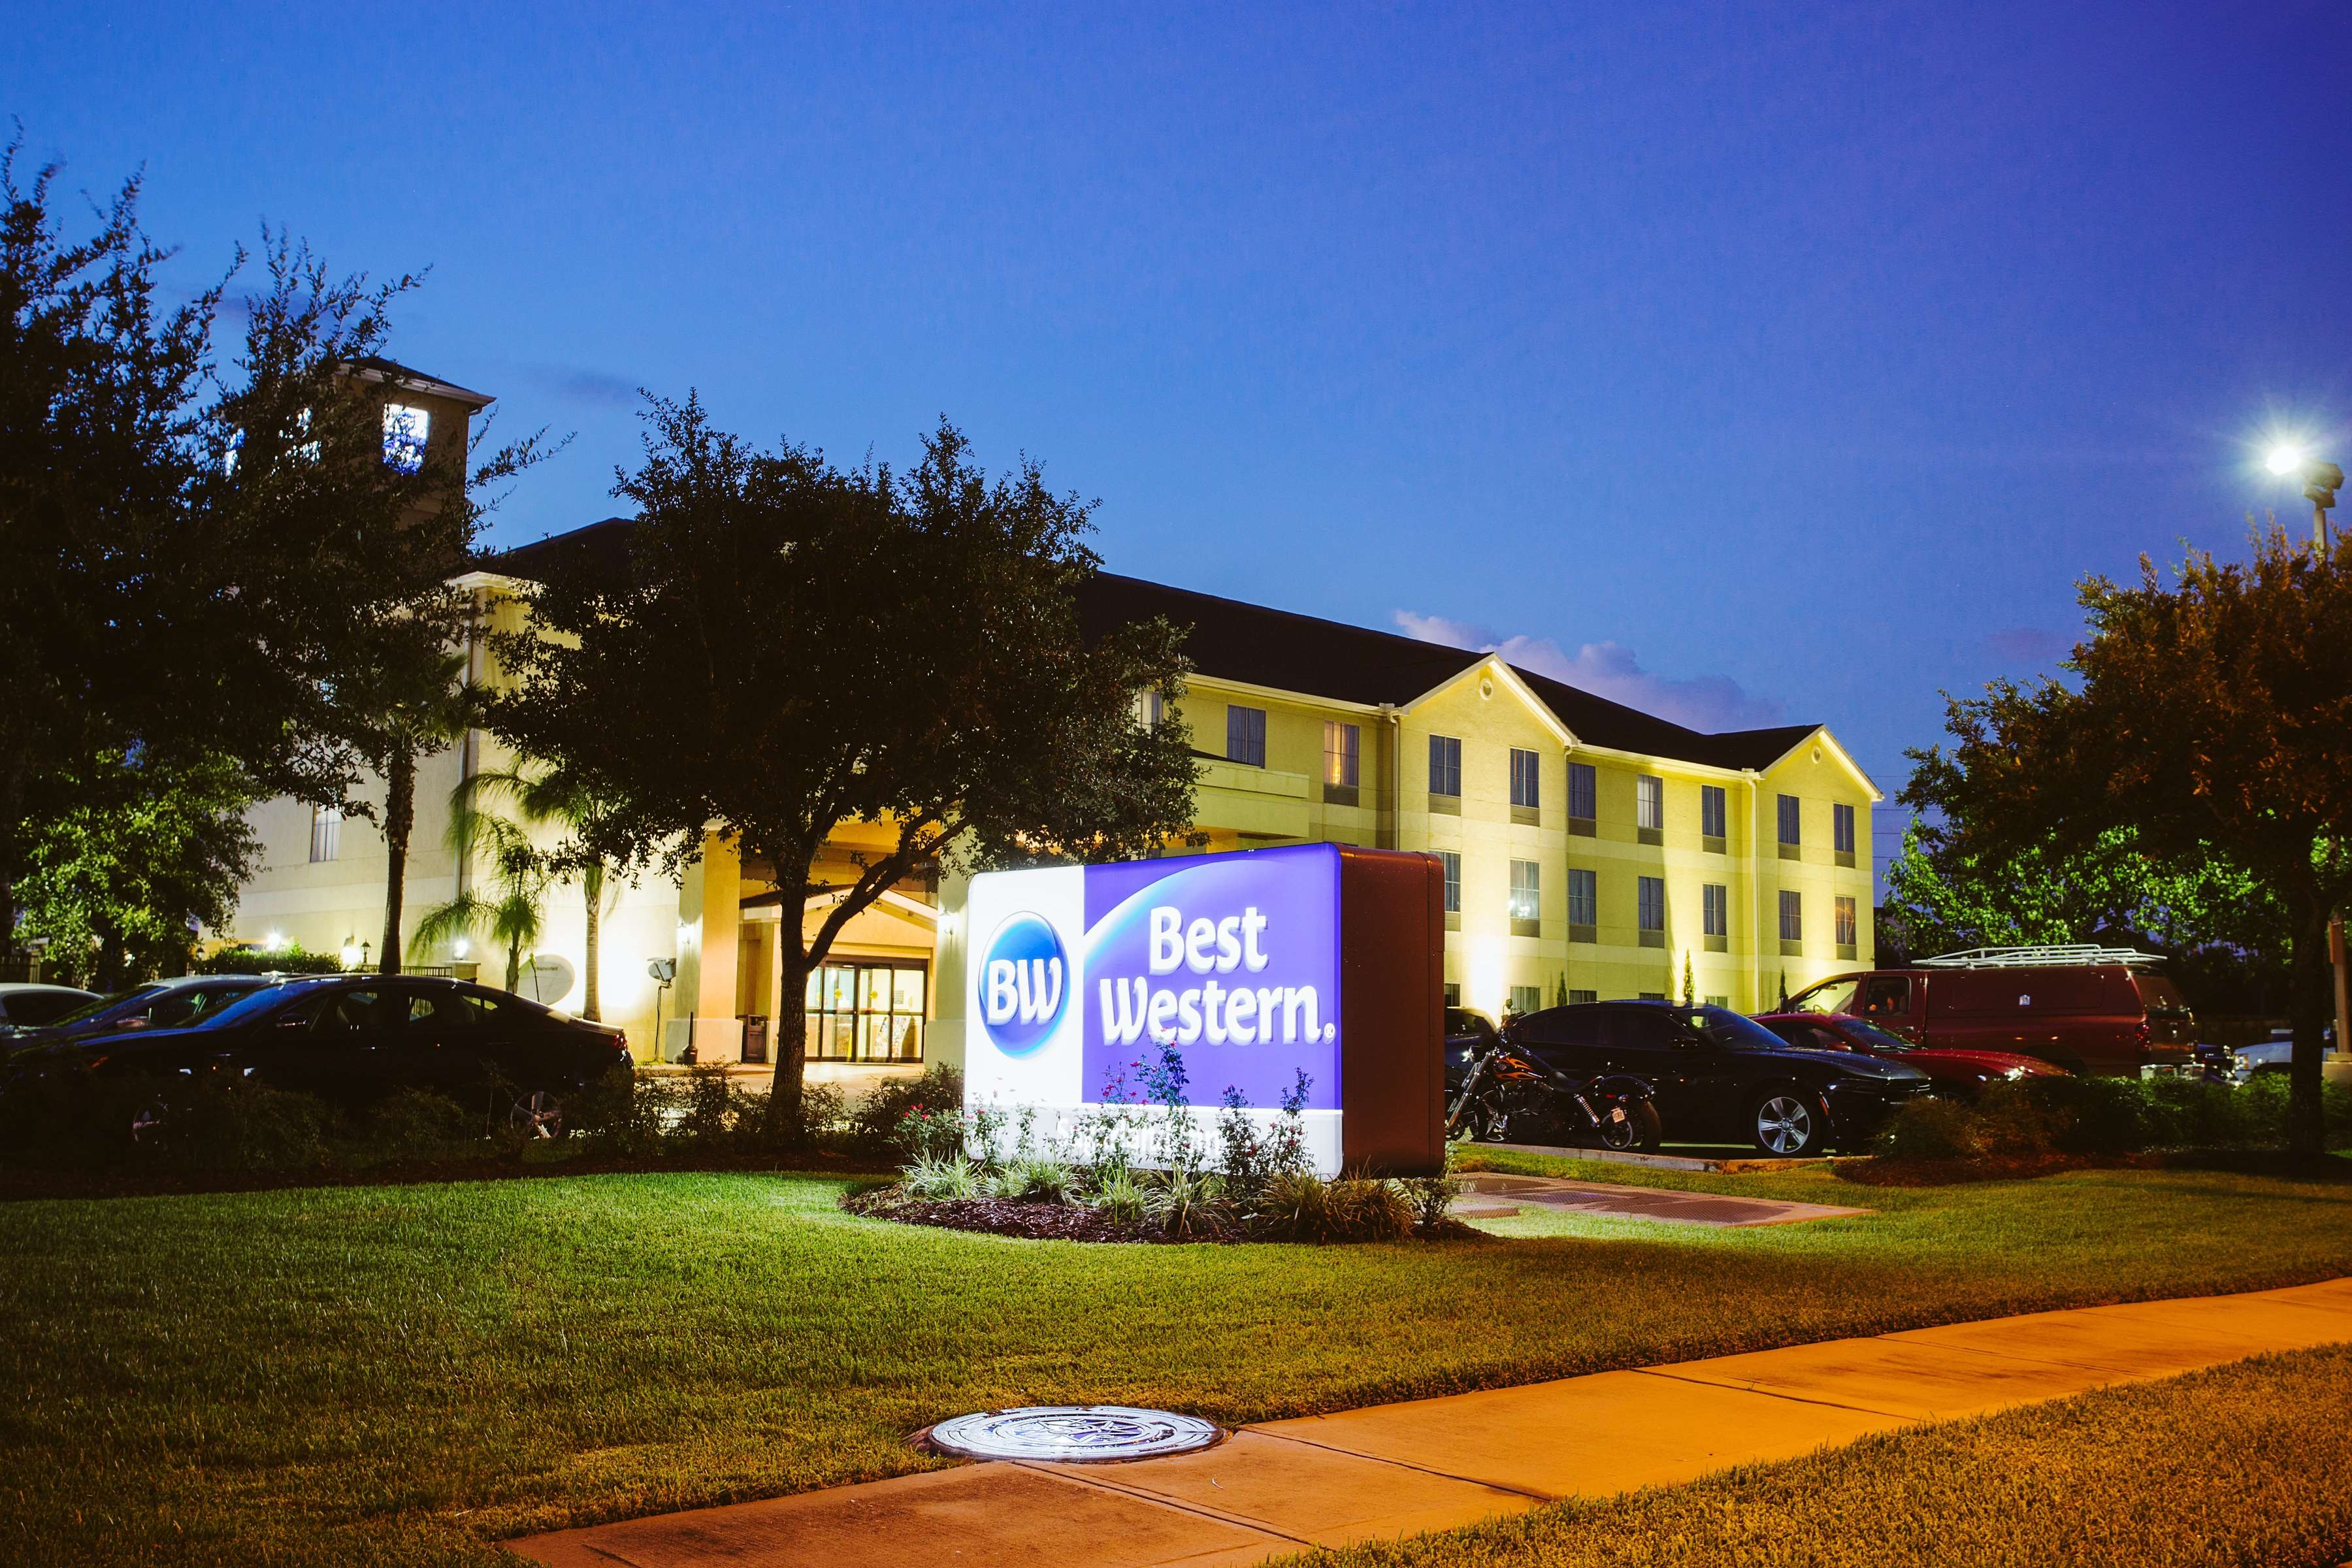 Best Western Sugarland Inn image 12